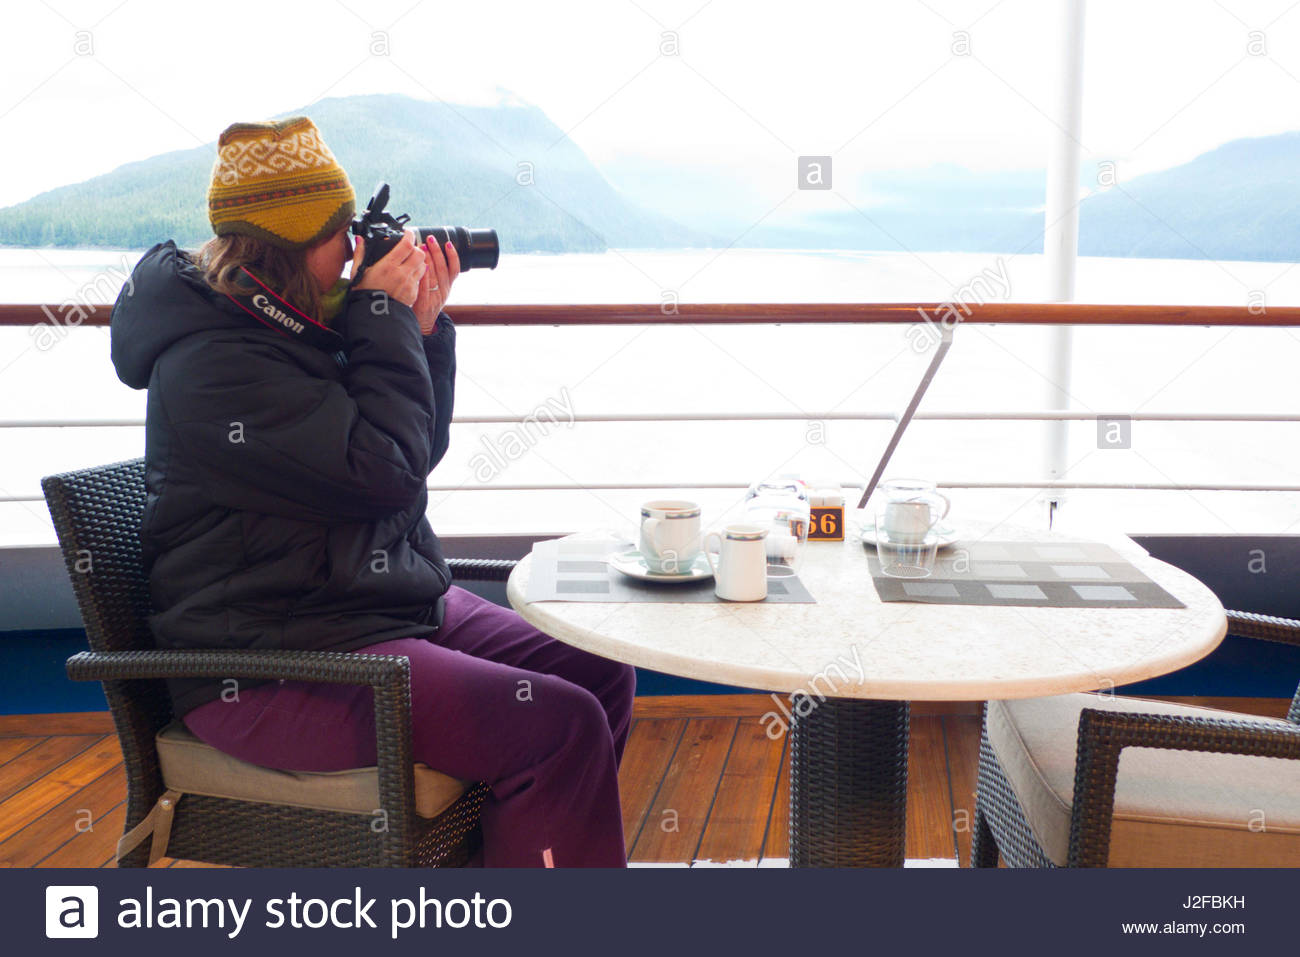 Woman wearing a jacket seated at table taking a photograph with her Digital DSLR camera on the Regency Seven Seas - Stock Image